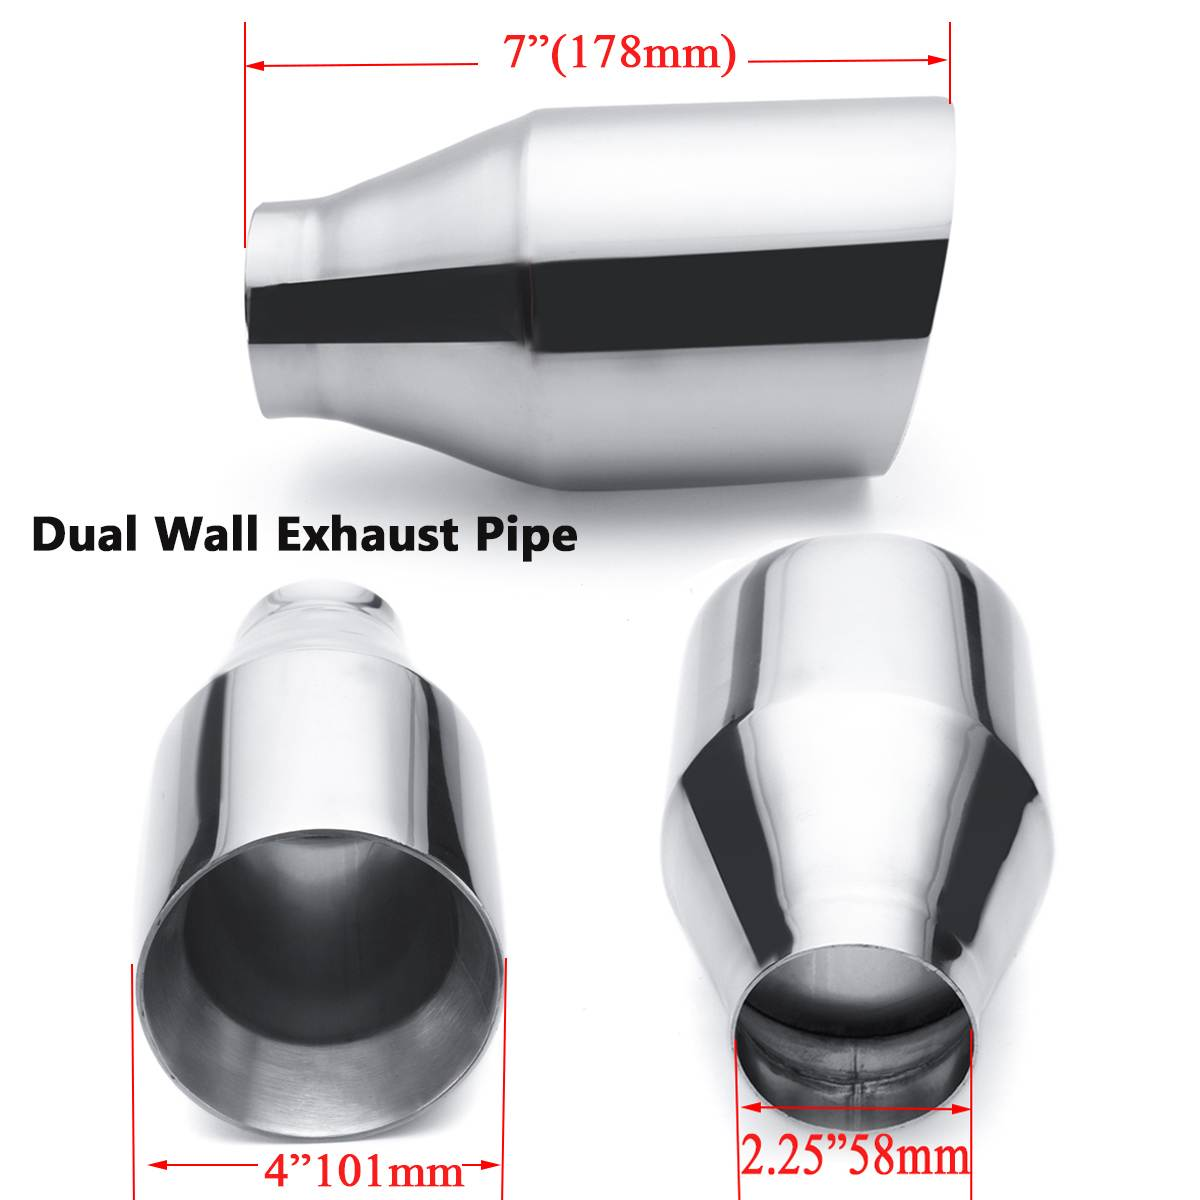 2pcs 58mm-101mm Car Exhaust Muffler Pipe Dual Wall Exhaust Tip 2.25-4 Auto Tail Pipe Stainless Steel image